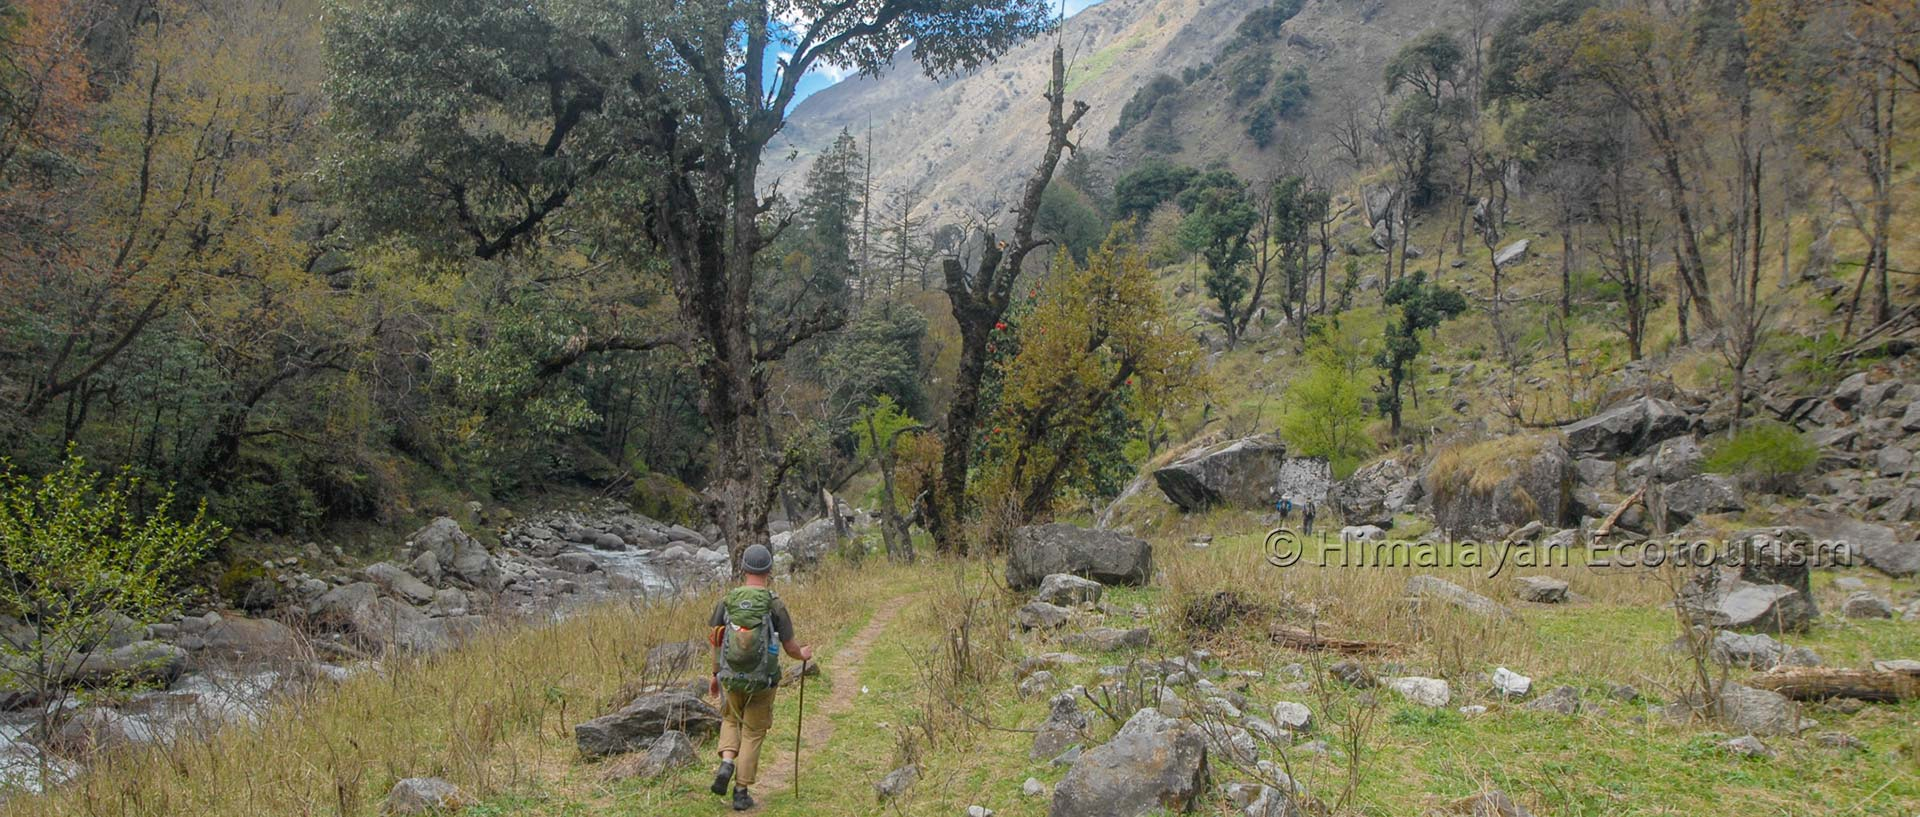 Rolla Trek in the Great Himalayan National Park GHNP